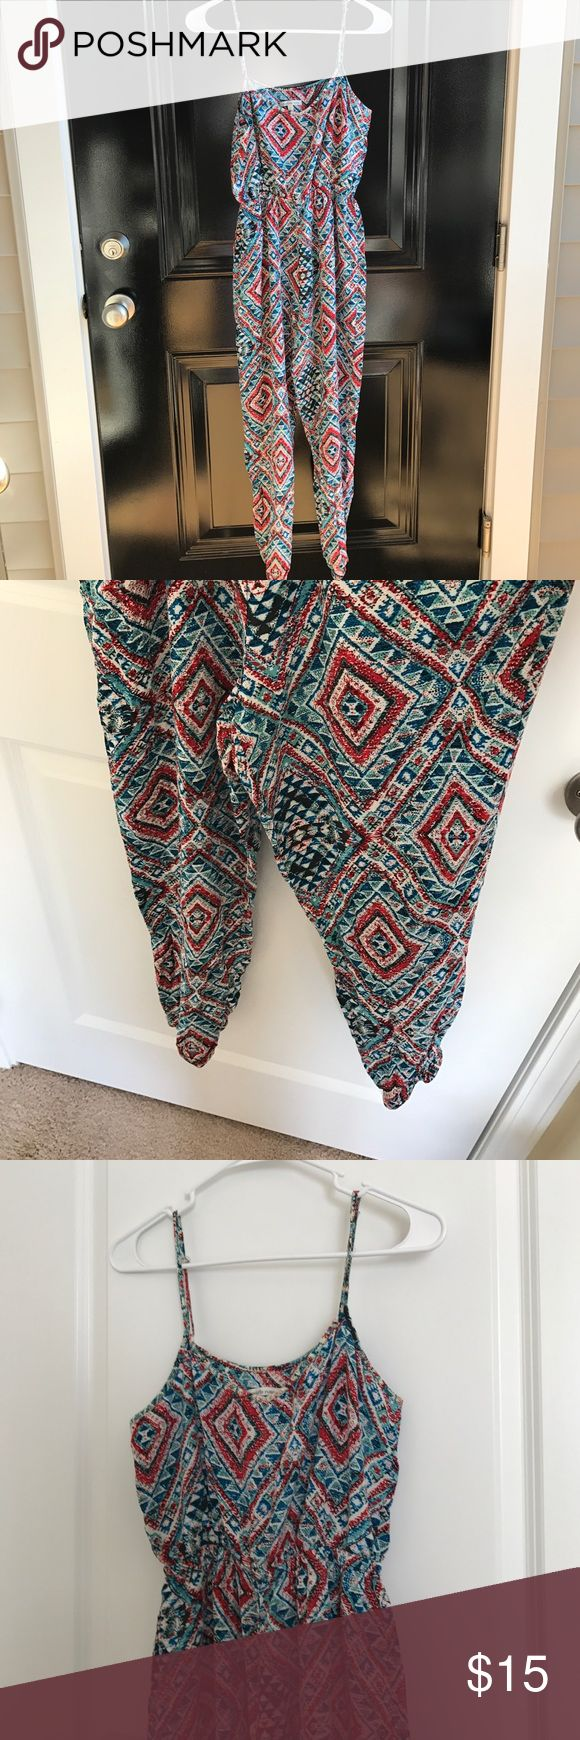 NWOT Charlotte Russe Tribal Print Jumpsuit NWOT Charlotte Russe Tribal Print Jumpsuit..size M.. has adjustable straps..measurements laying flat: size 15 inches, waist 11 inches (elastic), length from top of strap 49 inches (can vary due to adjustable straps), and inseam 25 inches Charlotte Russe Pants Jumpsuits & Rompers